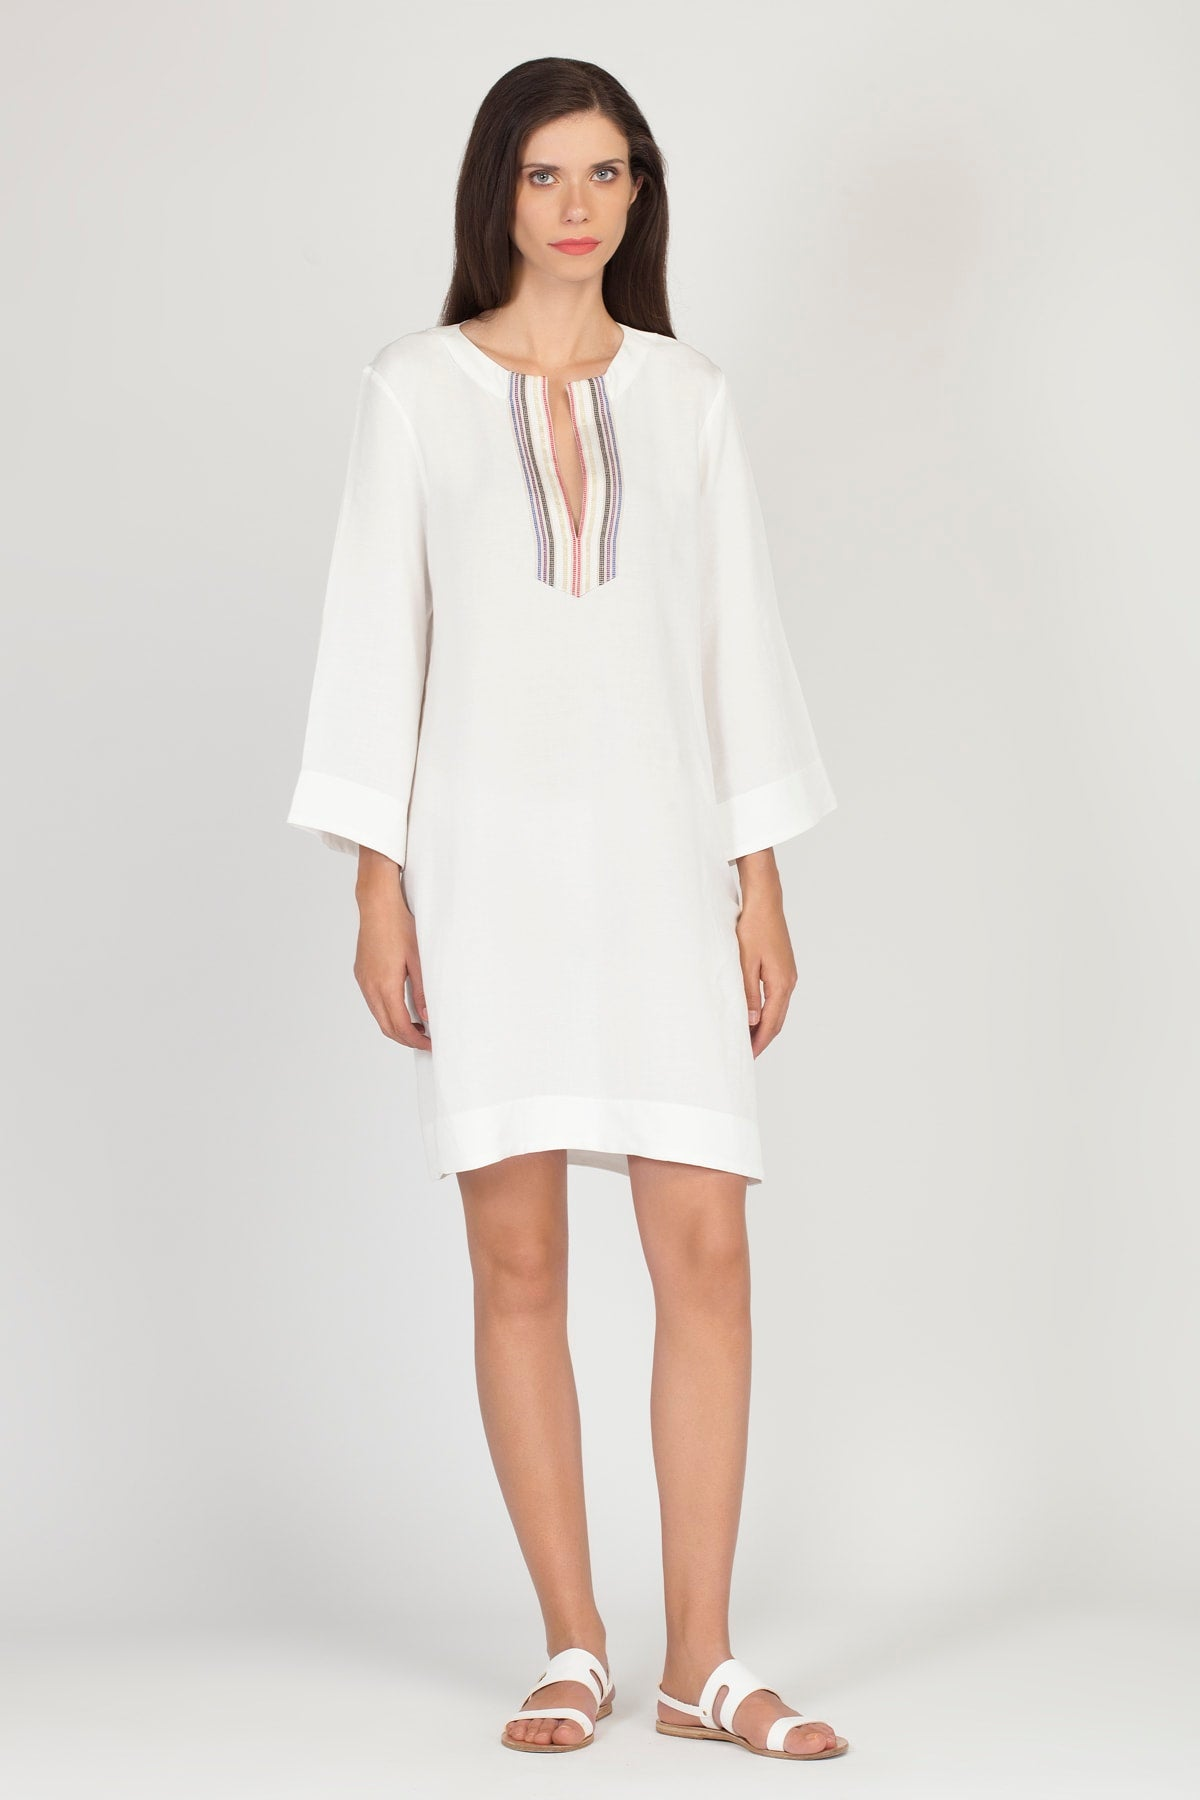 White LAUREL Linen/Rayon Dress |by KLOTHO